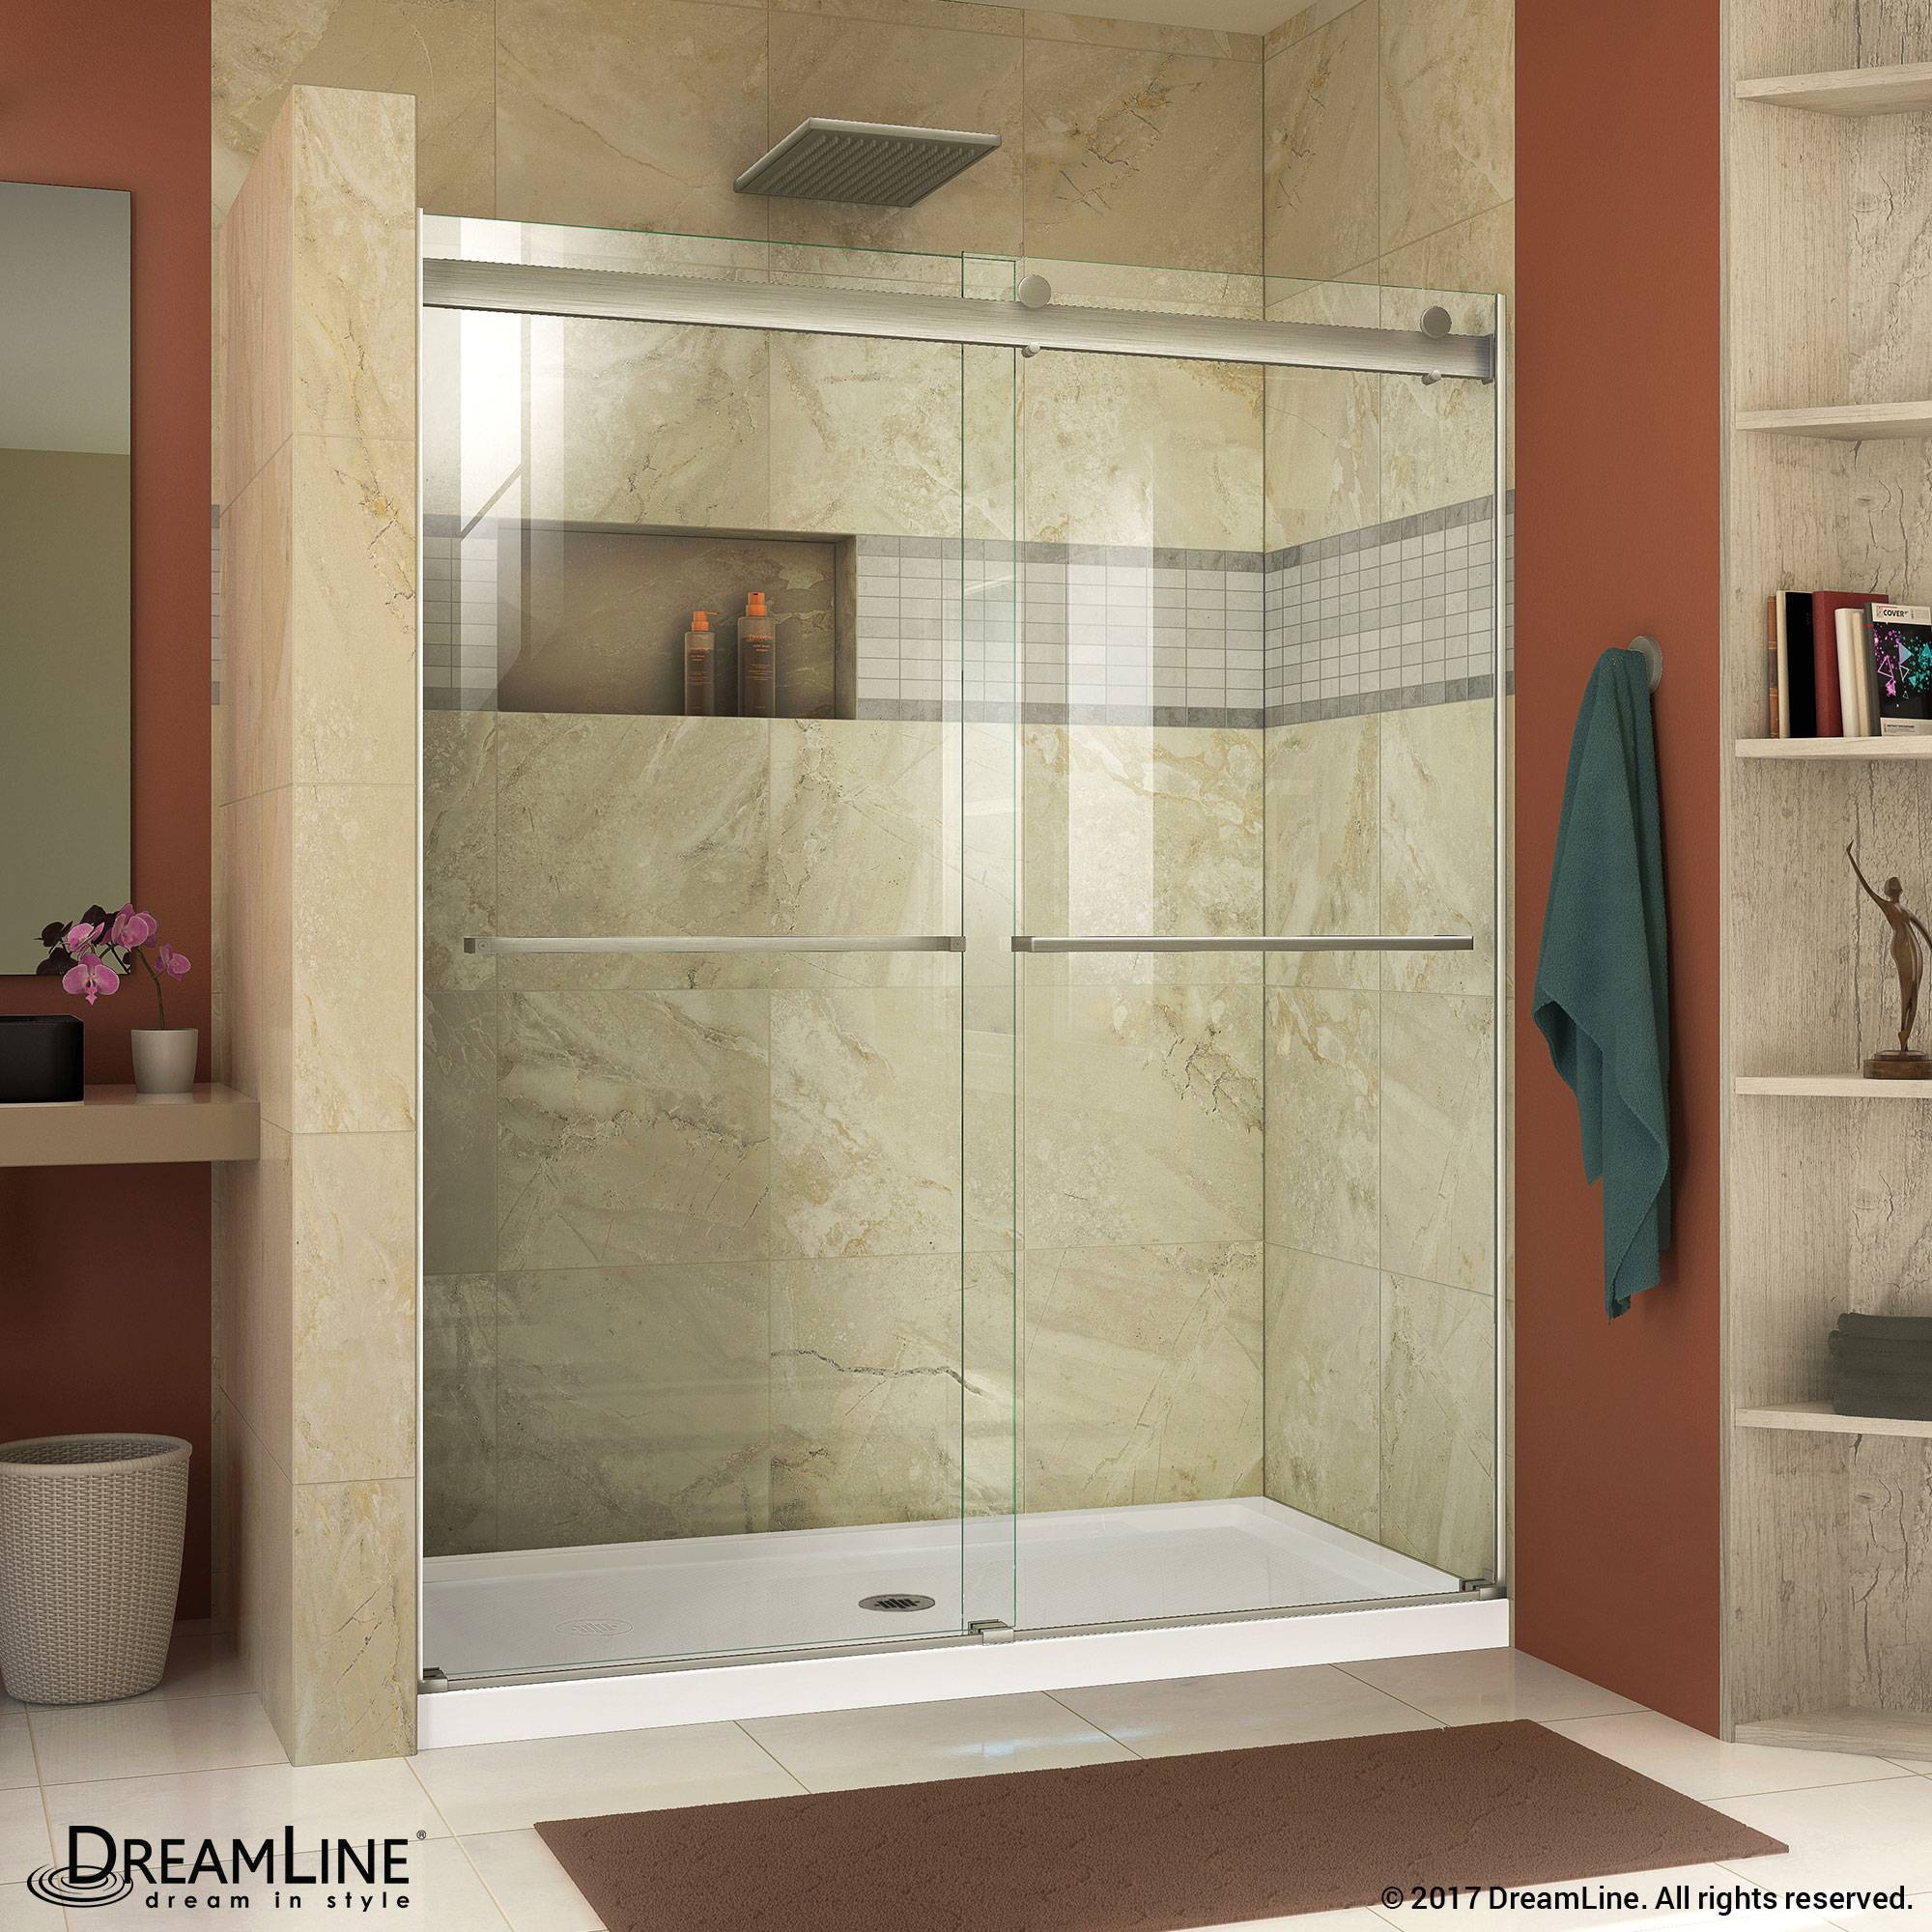 DreamLine Essence Bypass Sliding Shower Door